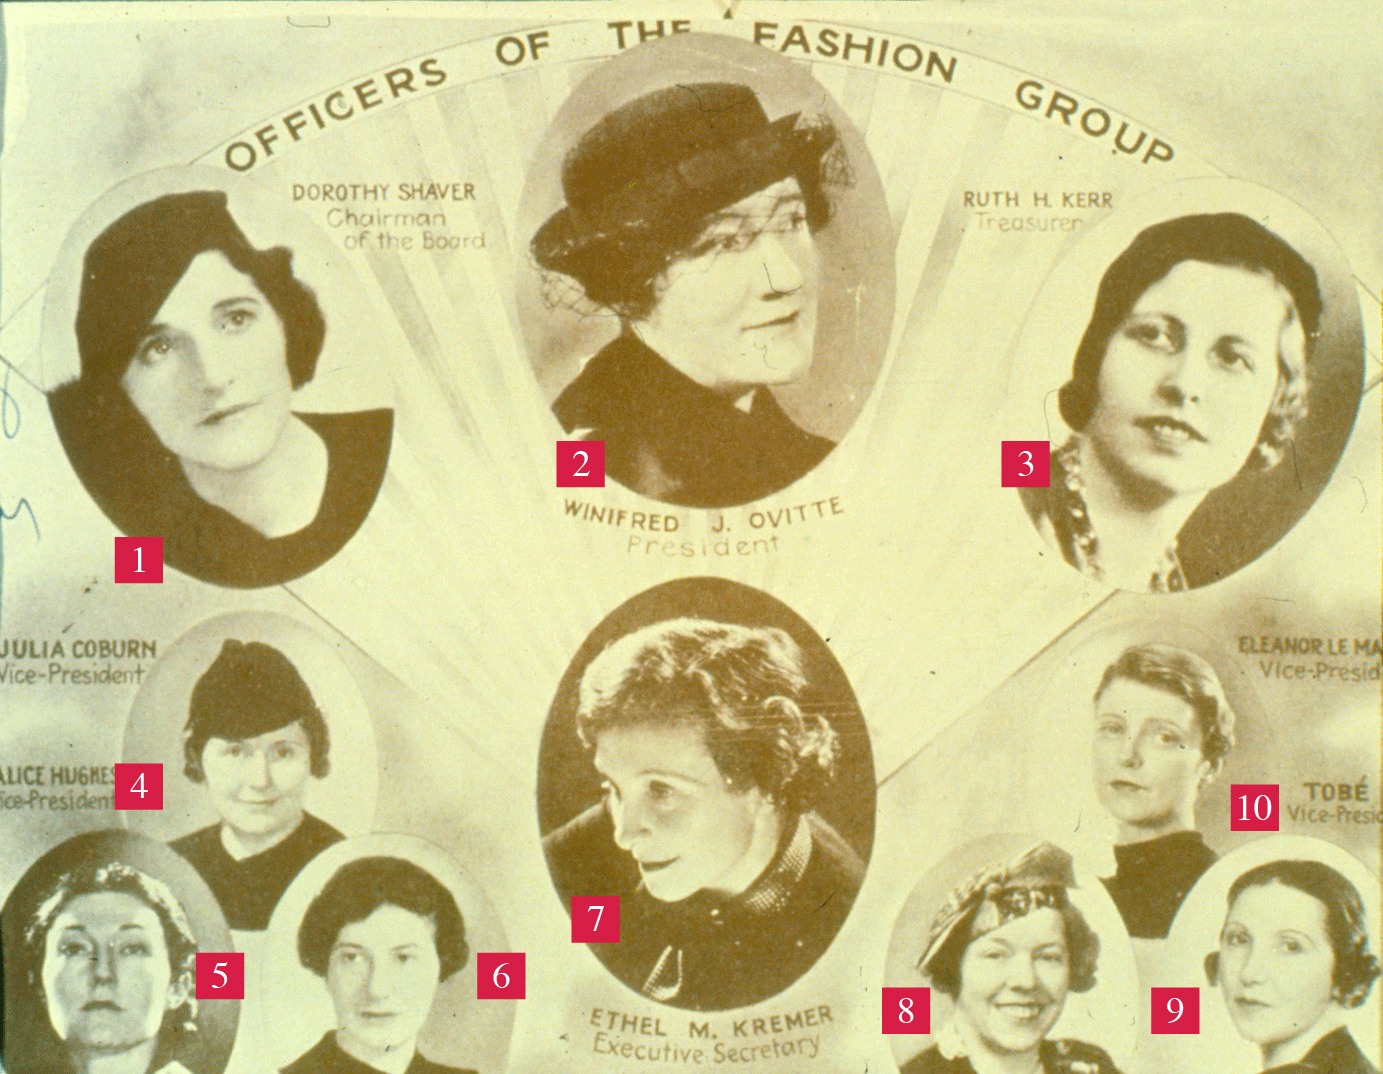 Officers of The Fashion Group